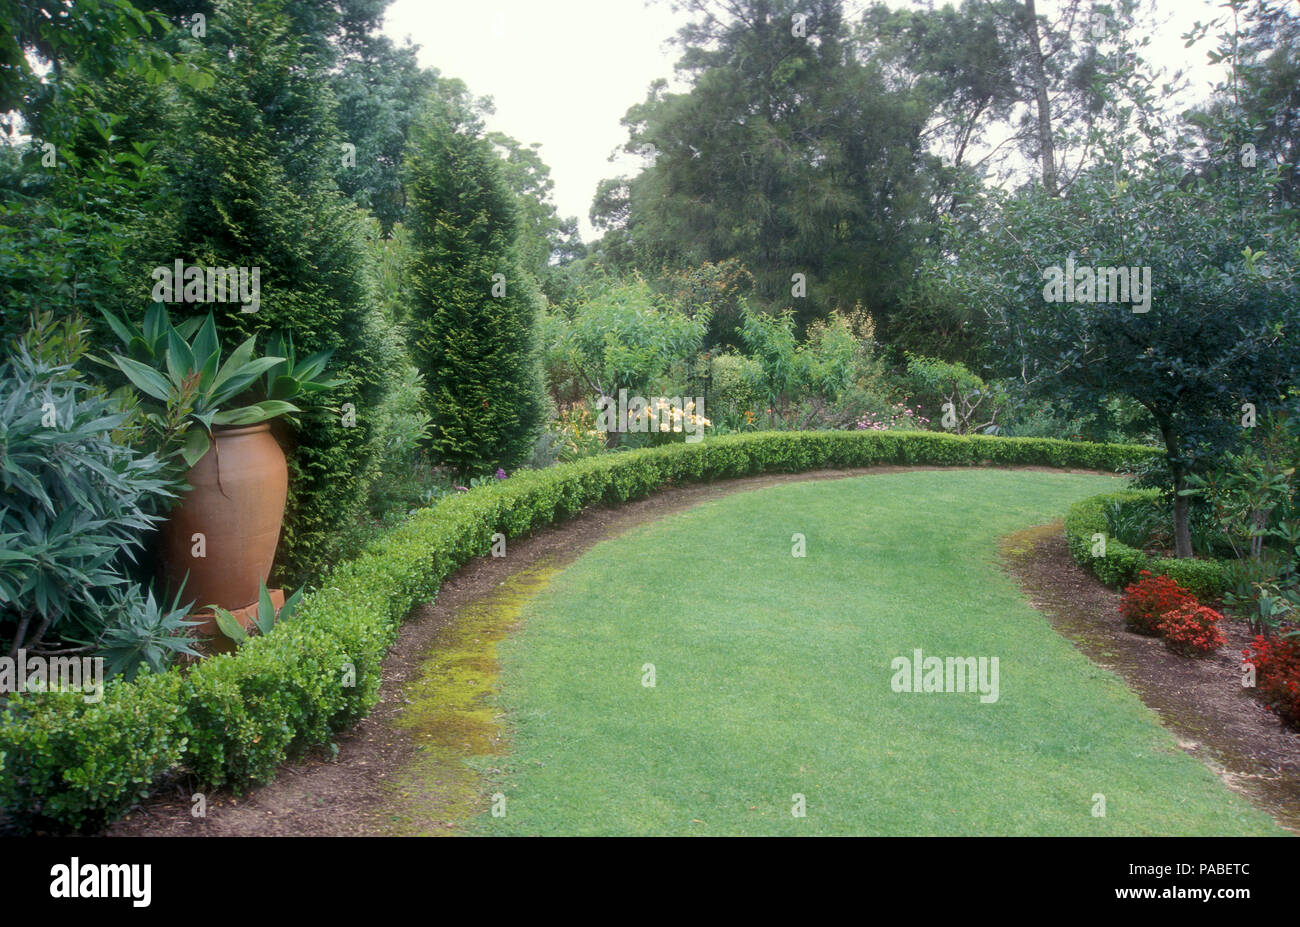 Large garden in the Blue Mountains region of Sydney, New South Wales, Australia - Stock Image